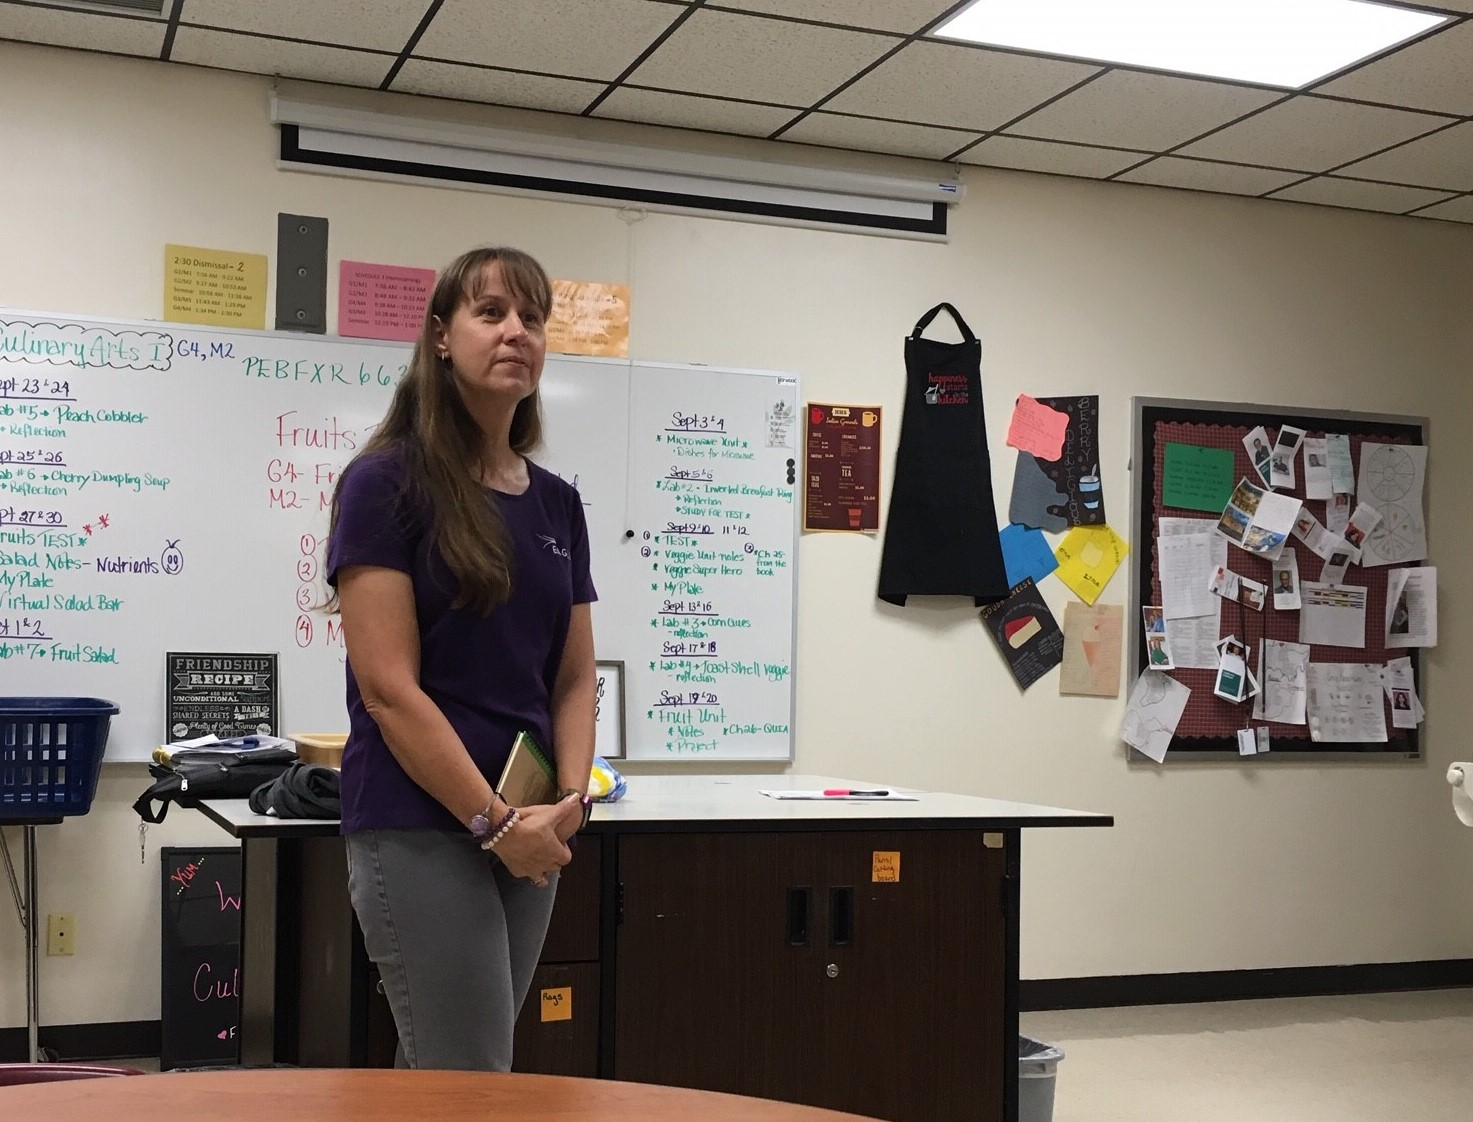 Theresa Trapp speaks to students during PRIDE Time on Oct. 2. Trapp works in the radio broadcasting industry.